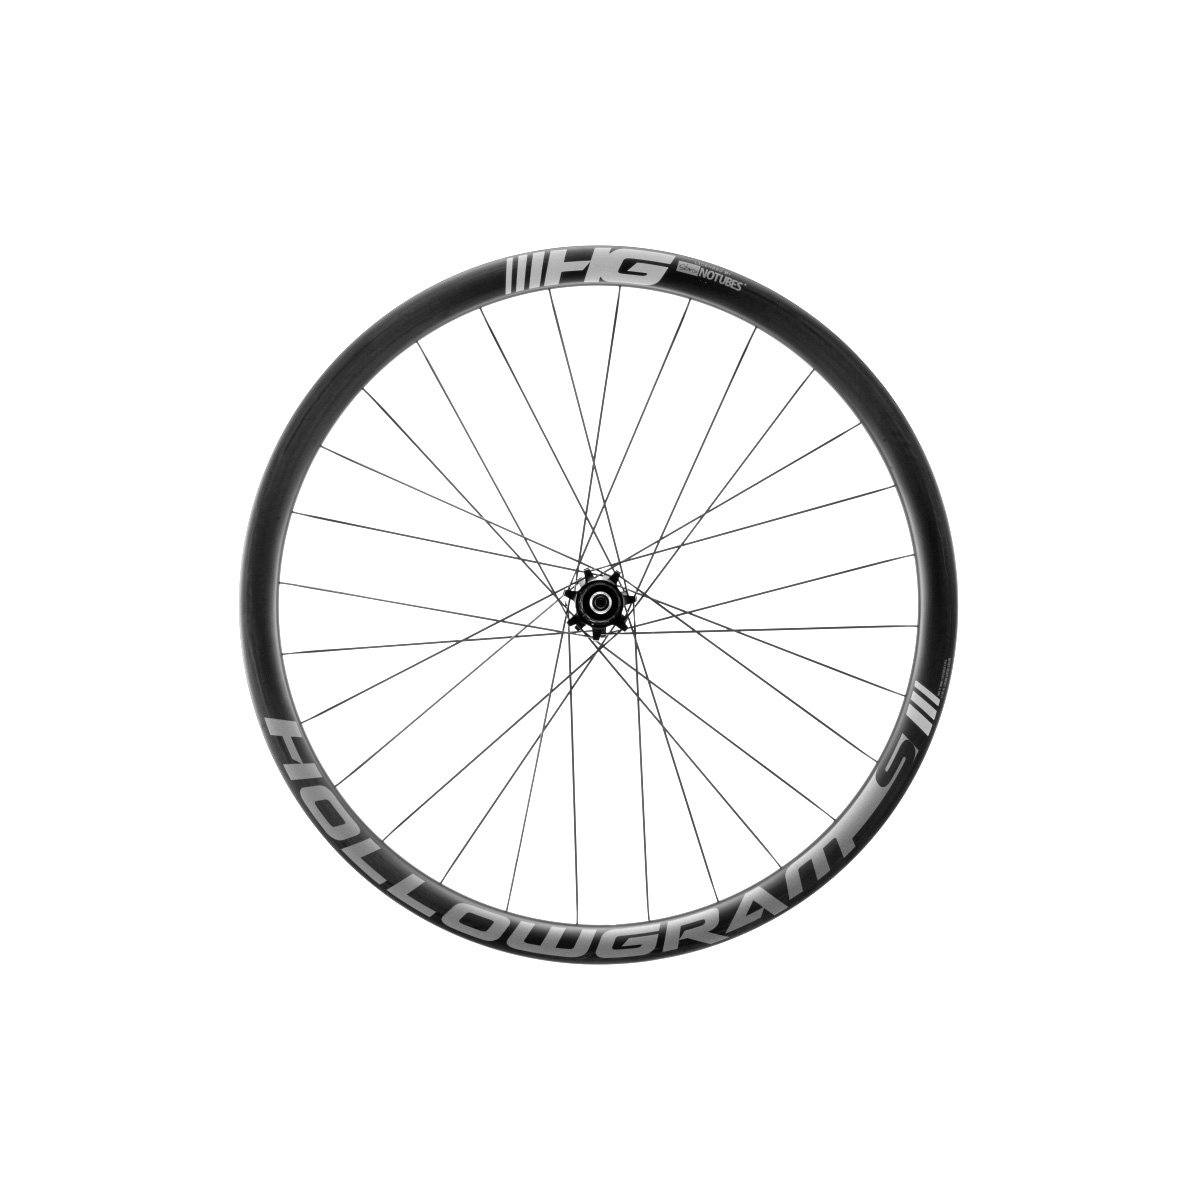 Cannondale Hollowgram 35 Disc FR Wheel Thru Axle 700 GRY Parts - Wheel CANNONDALE